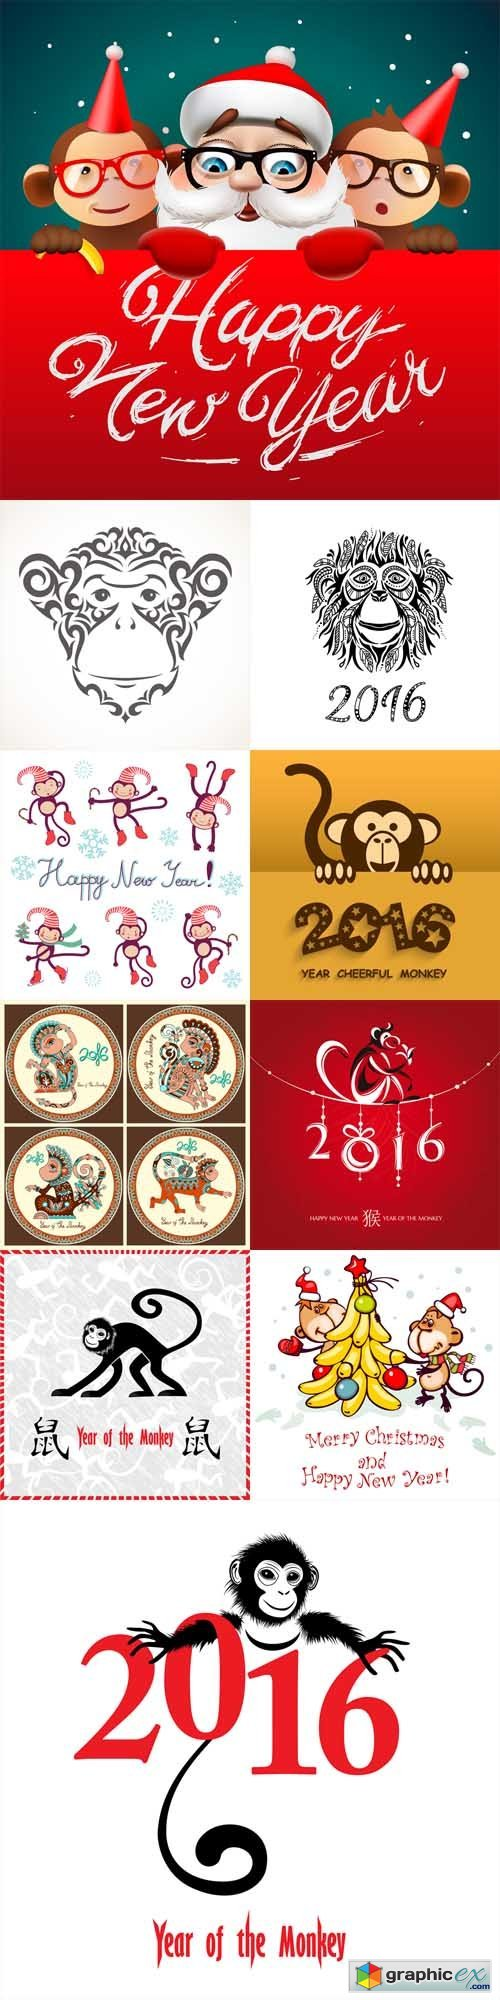 Happy New Year 2016 - Year Of The Monkey Vector Set